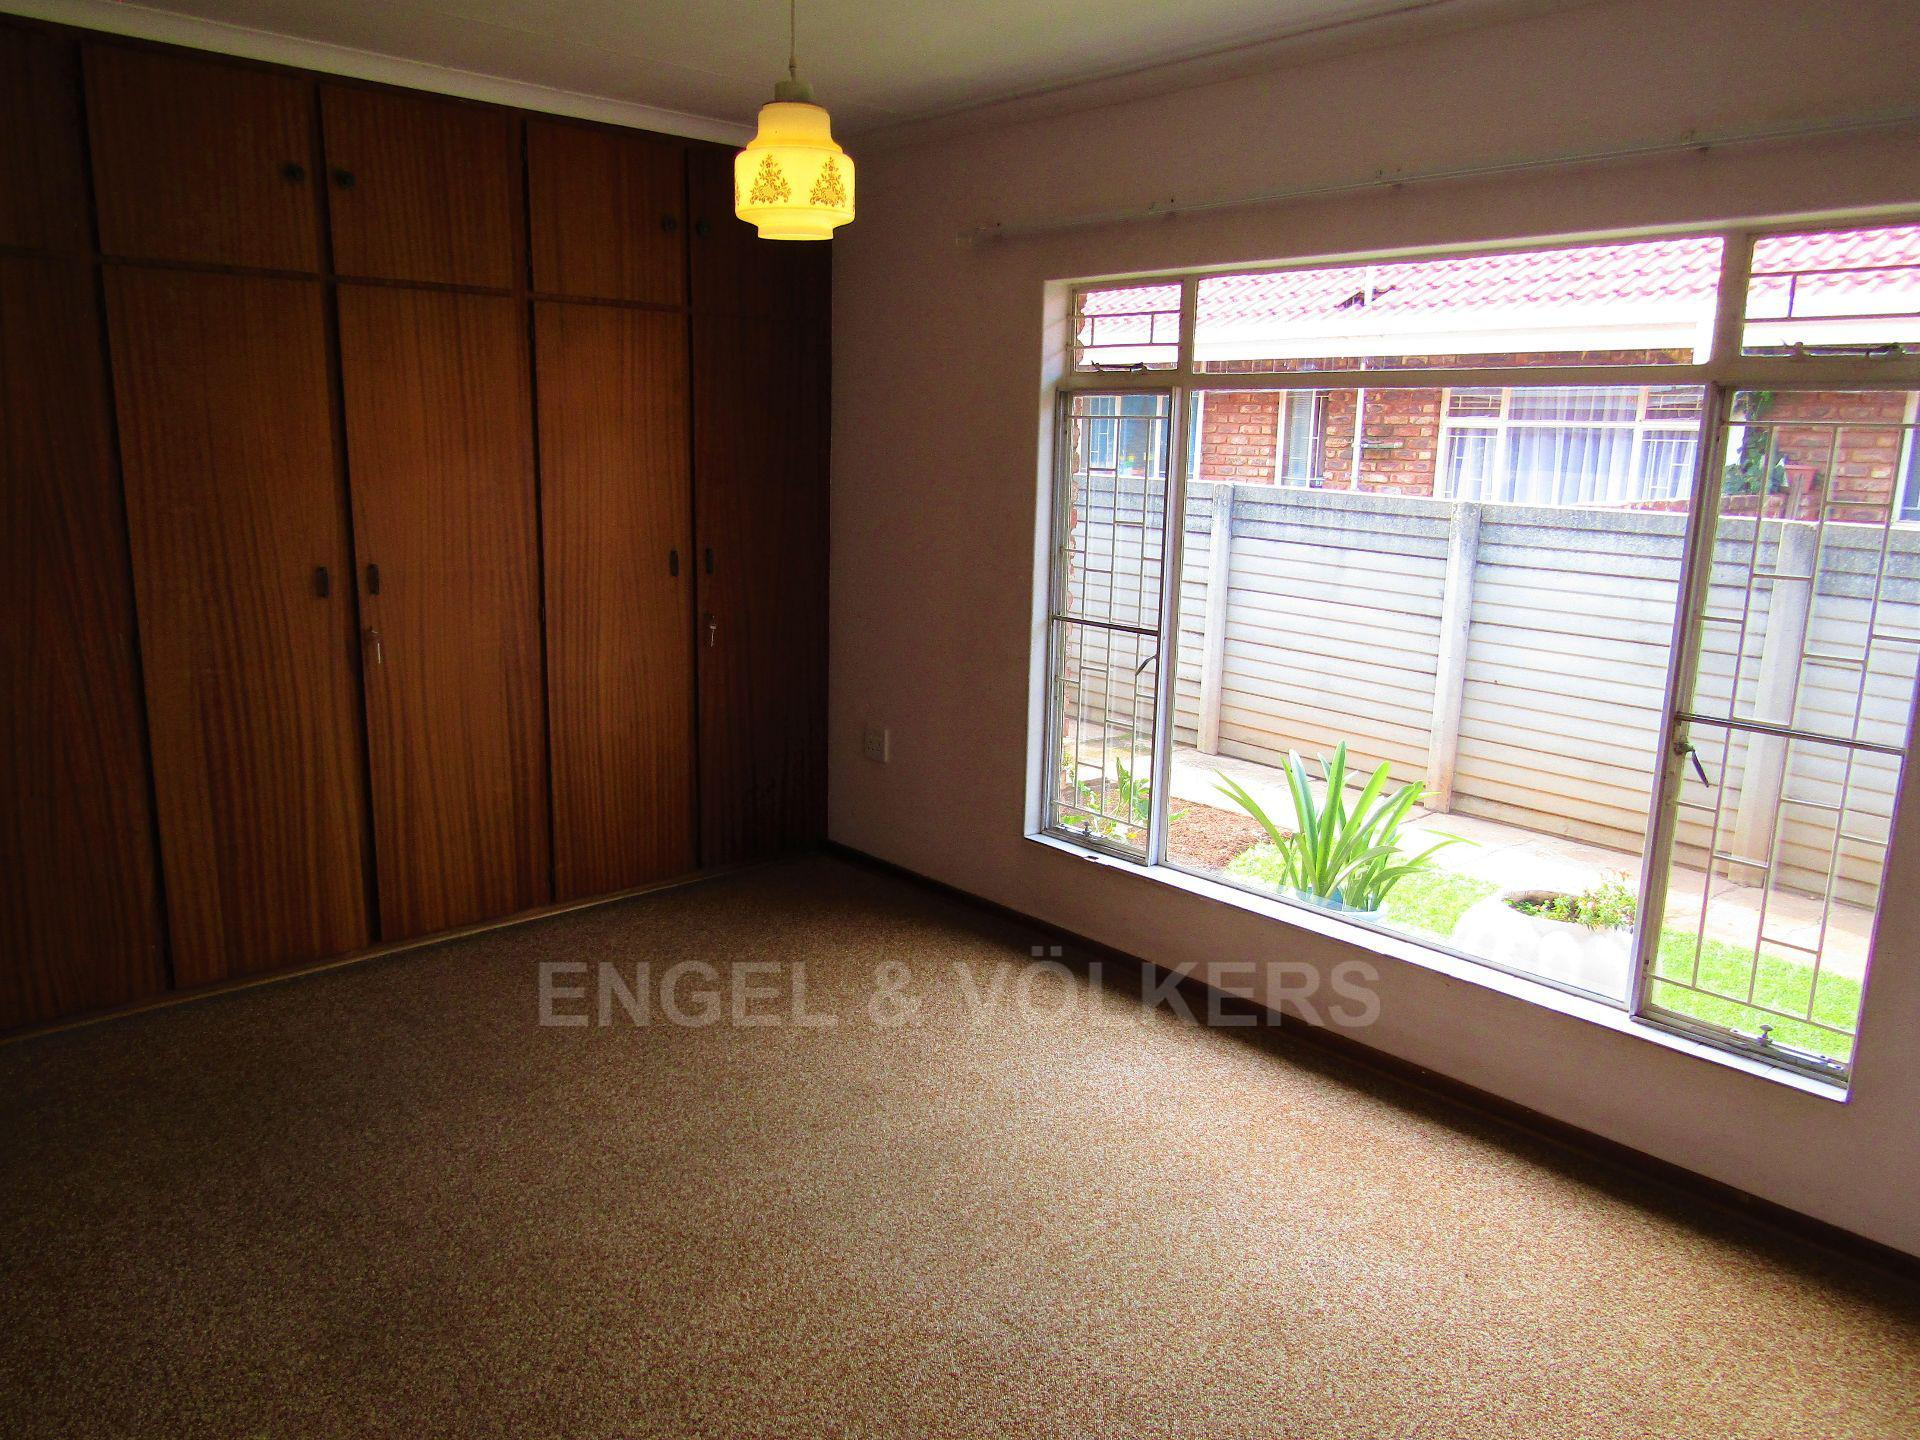 Potchefstroom Central property for sale. Ref No: 13459099. Picture no 14